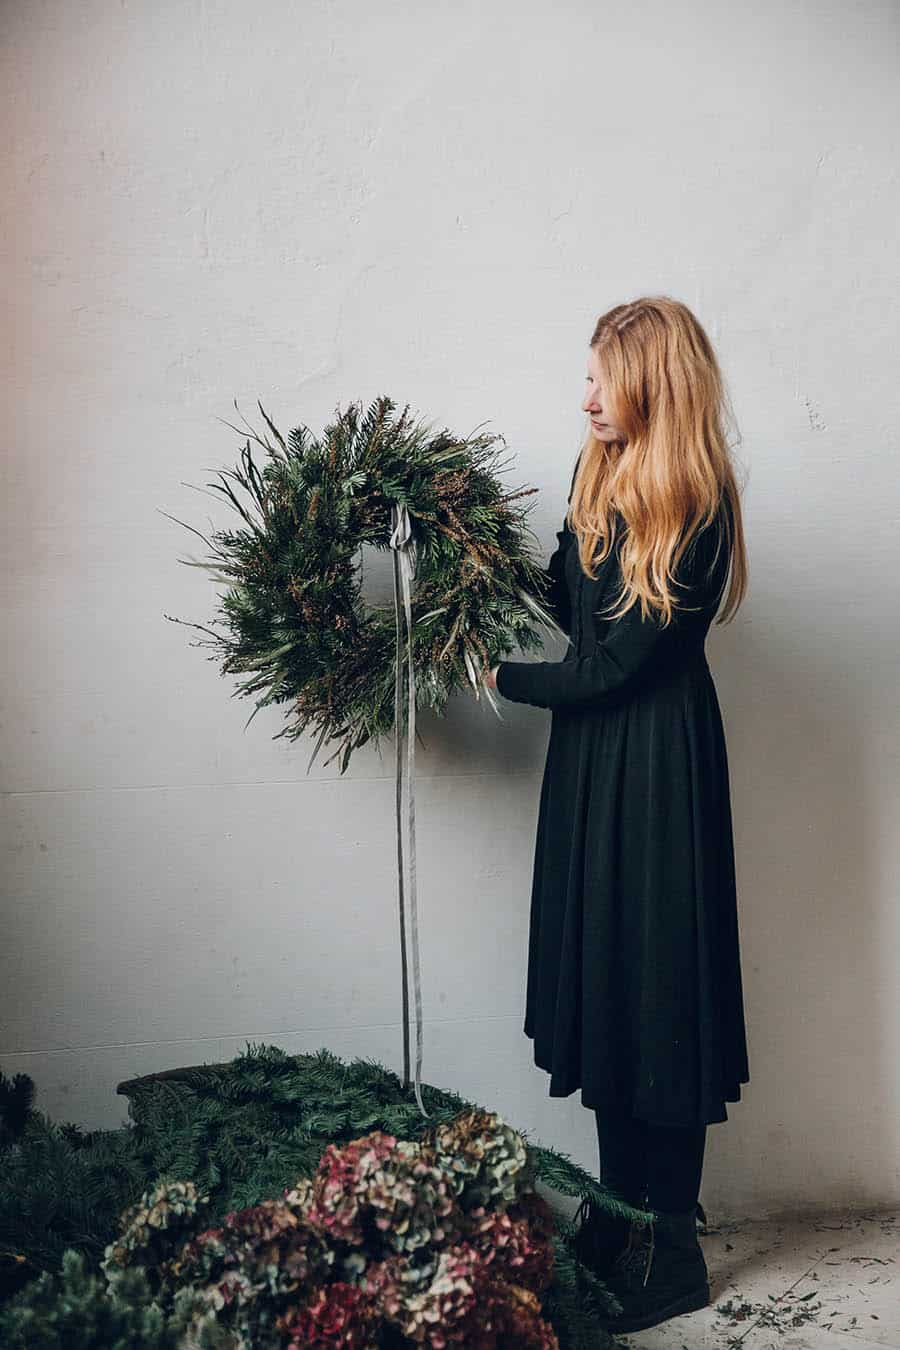 [2020 Christmas]How To Make A Natural Wreath Step By Step At Home From Scratch?